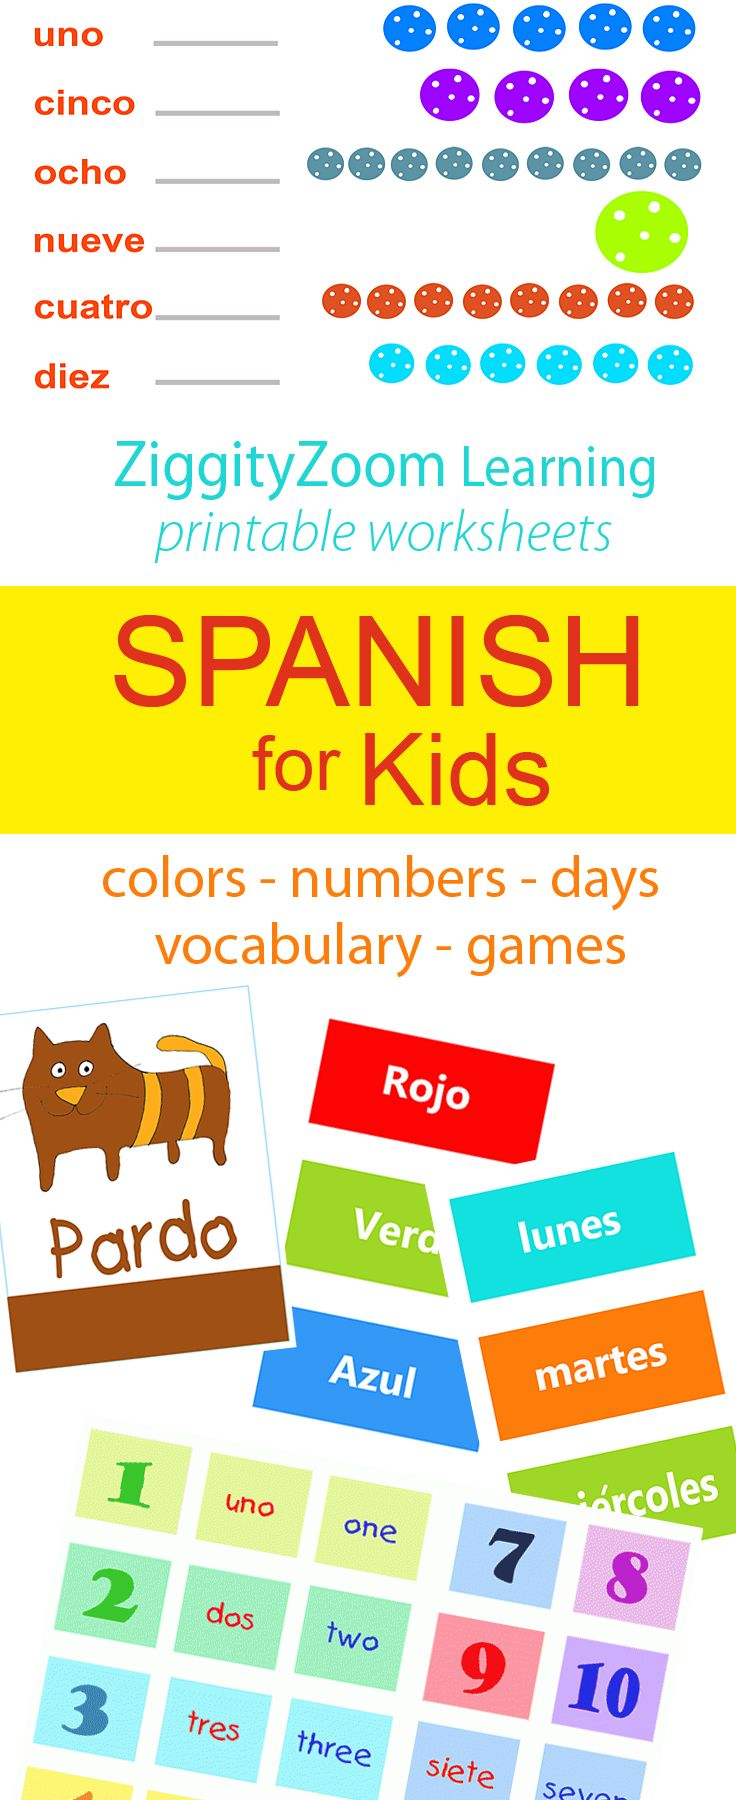 Free Printable Spanish worksheets for kids.  Lots of beginner printables for learning Spanish or English.  Educational printables on ZiggityZoom.